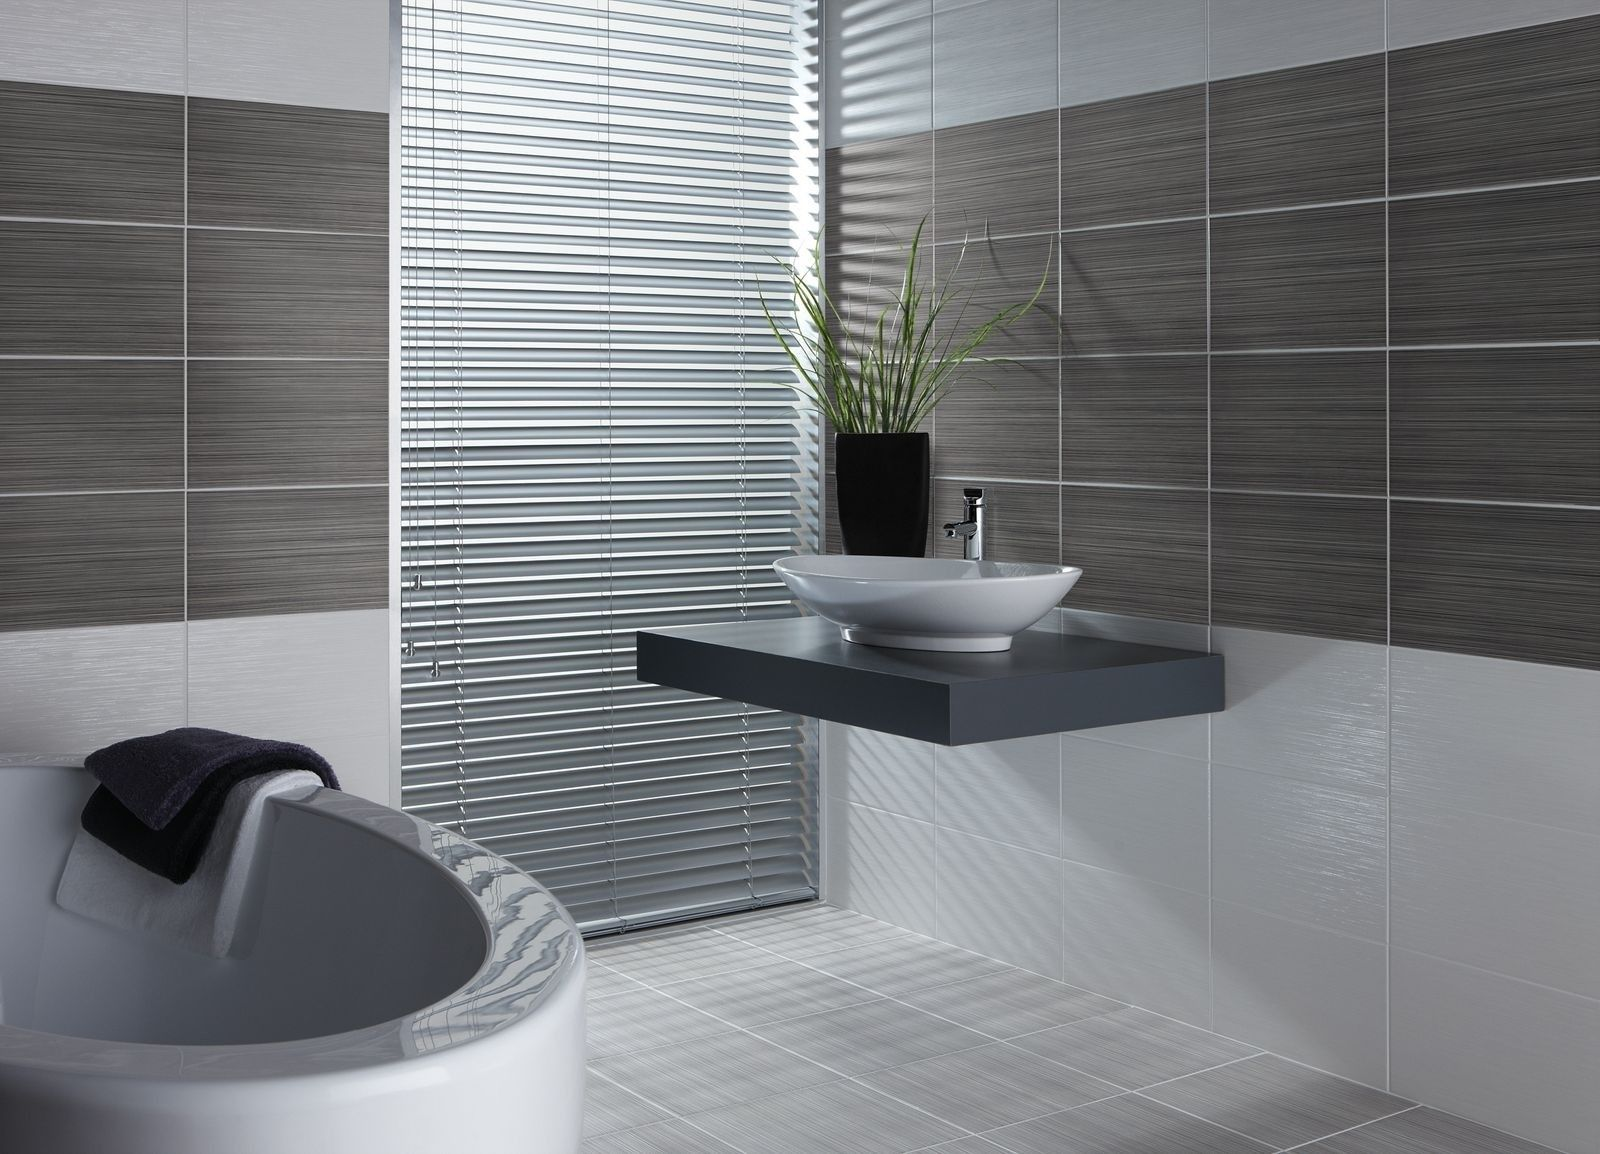 striped grey tile and bathroom grout | Update Business Review ...